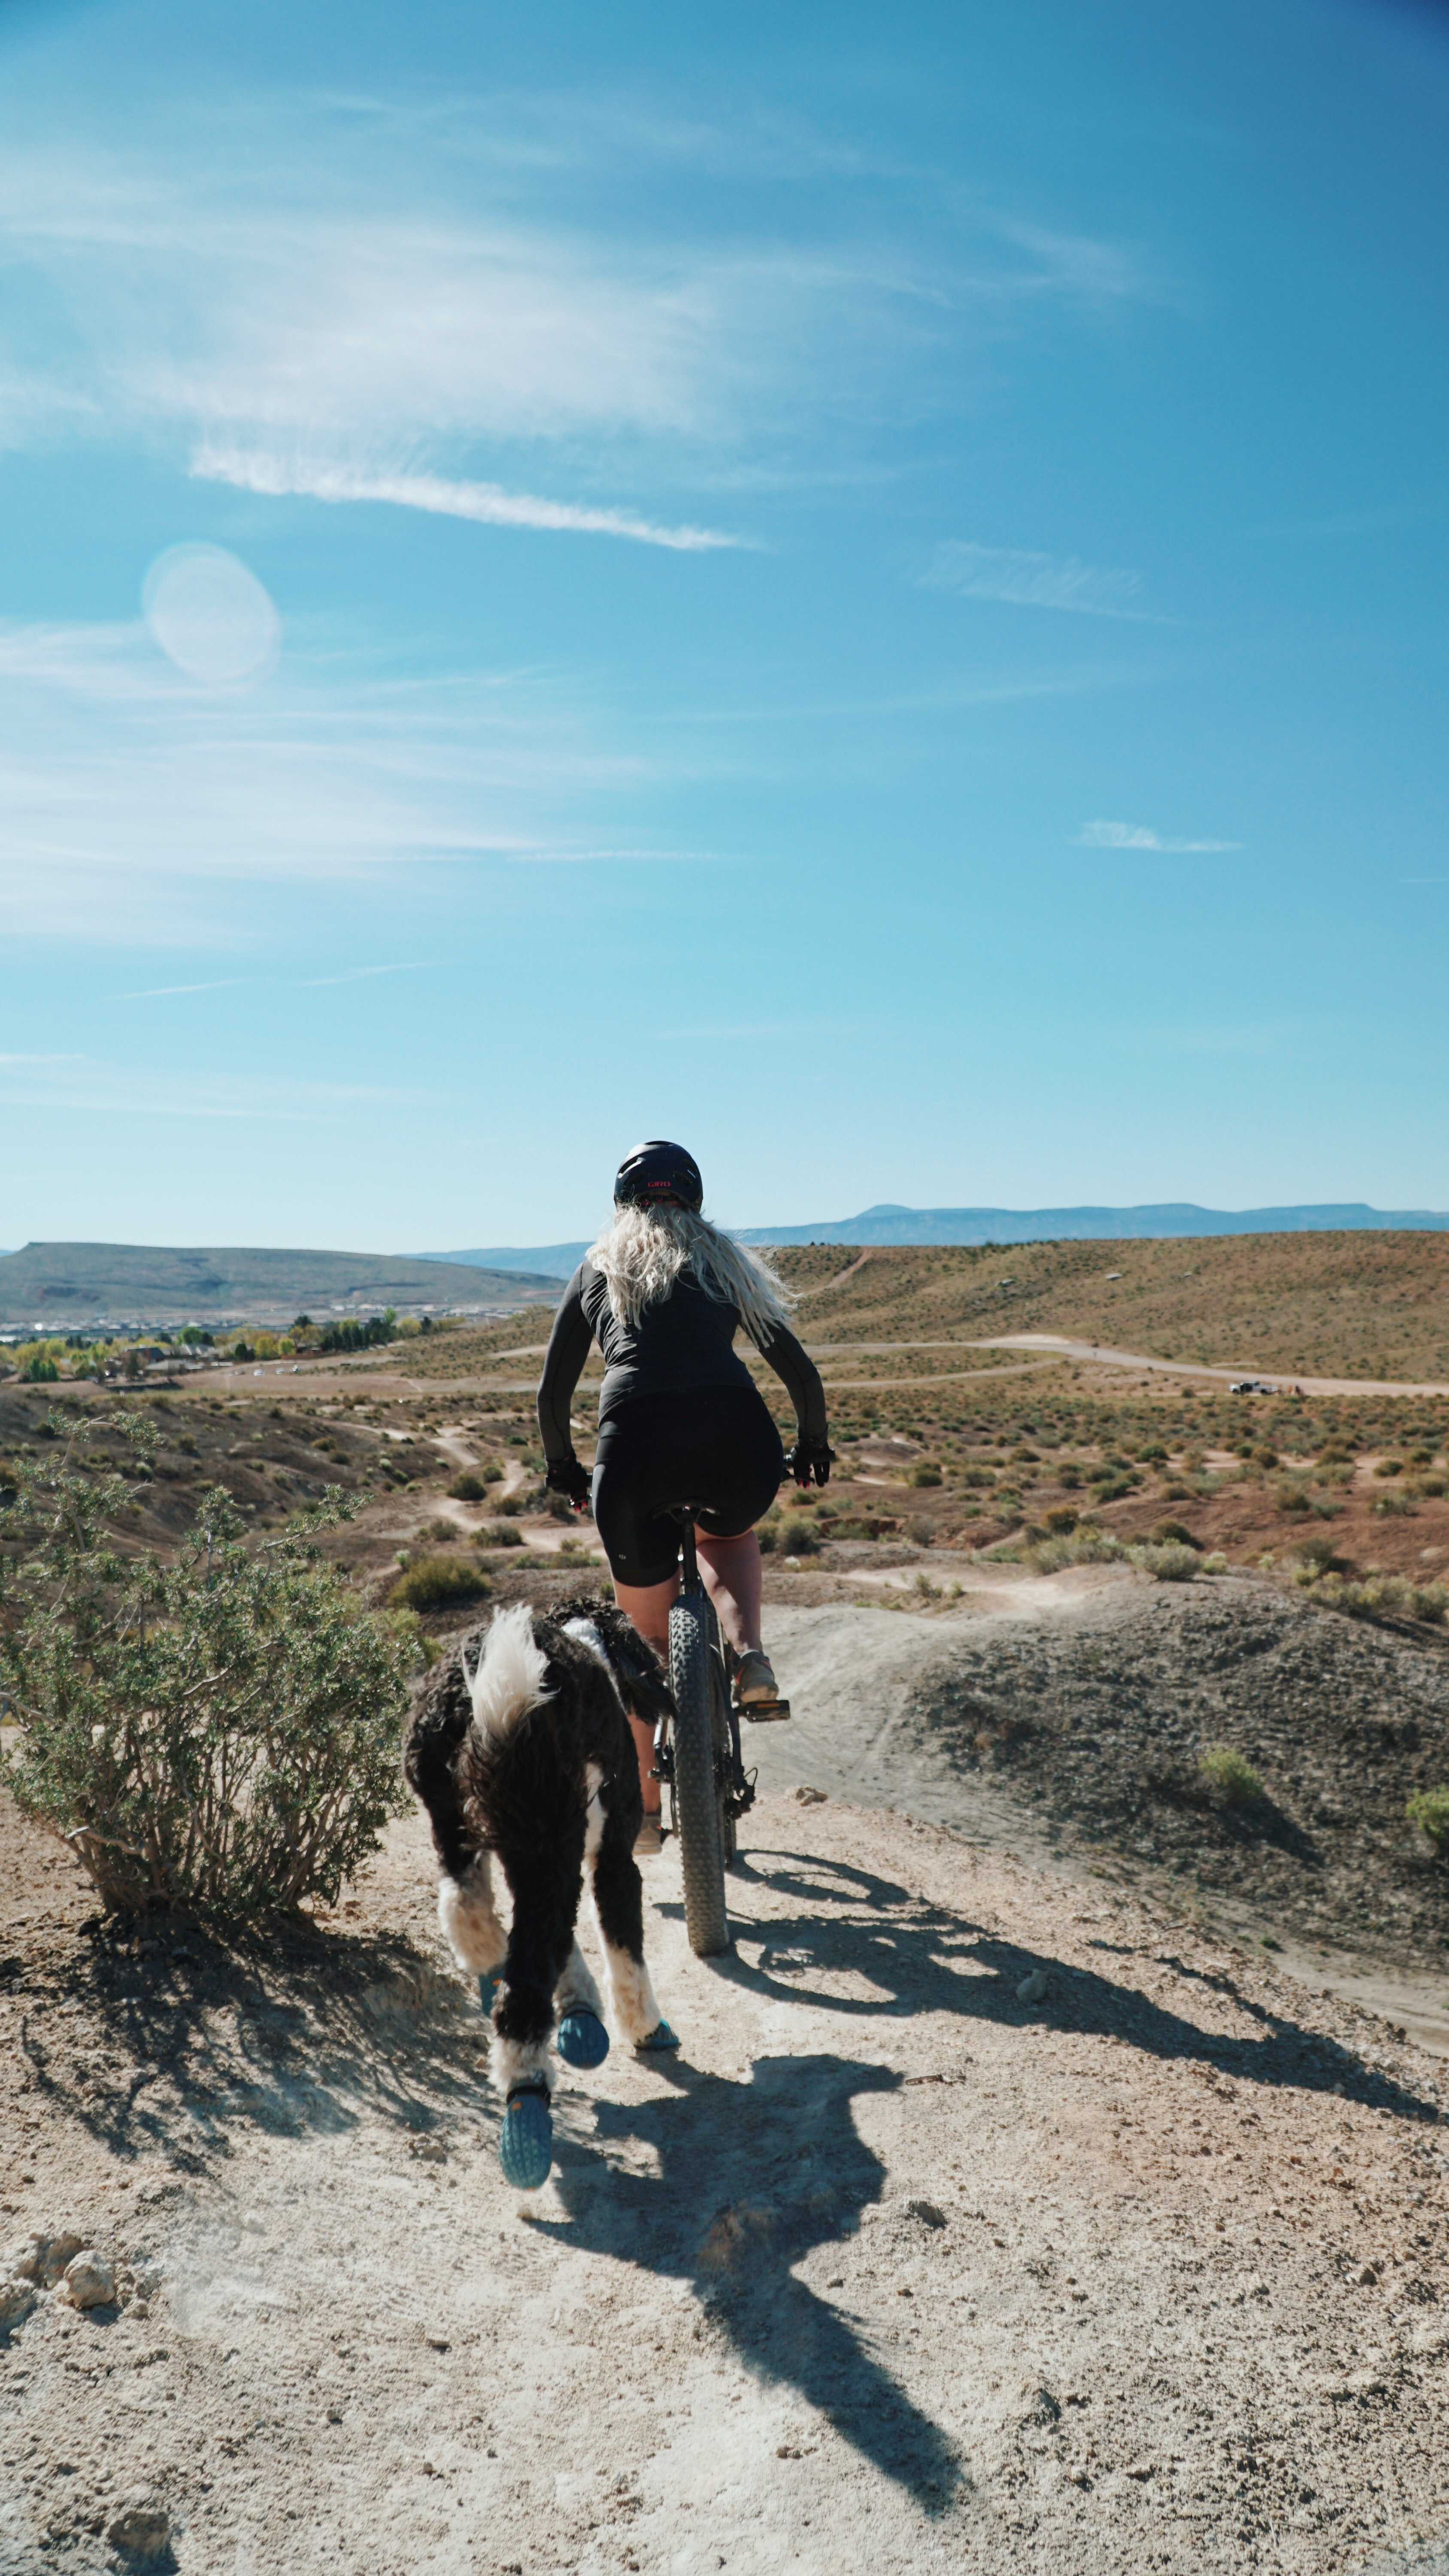 A blonde woman riding a bicycle through the desert with a dog following him in St. George